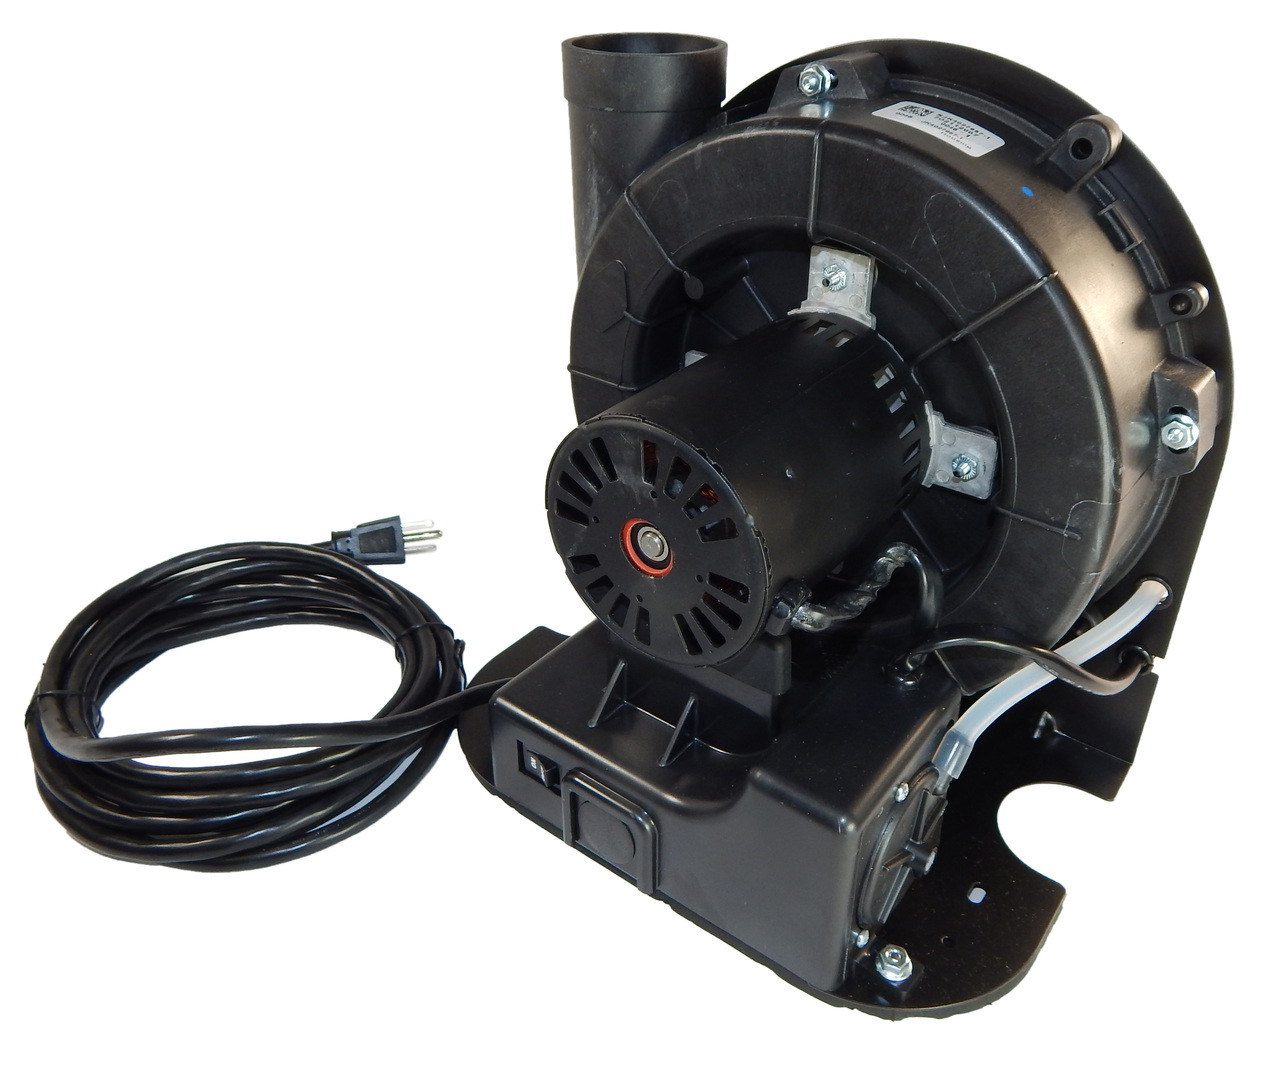 Hot Water Heater Exhaust Draft Inducer Blower   7021 11445 Fasco   A996. Hot Water Heater Blowers   Draft Inducers   Fasco Electric Motors